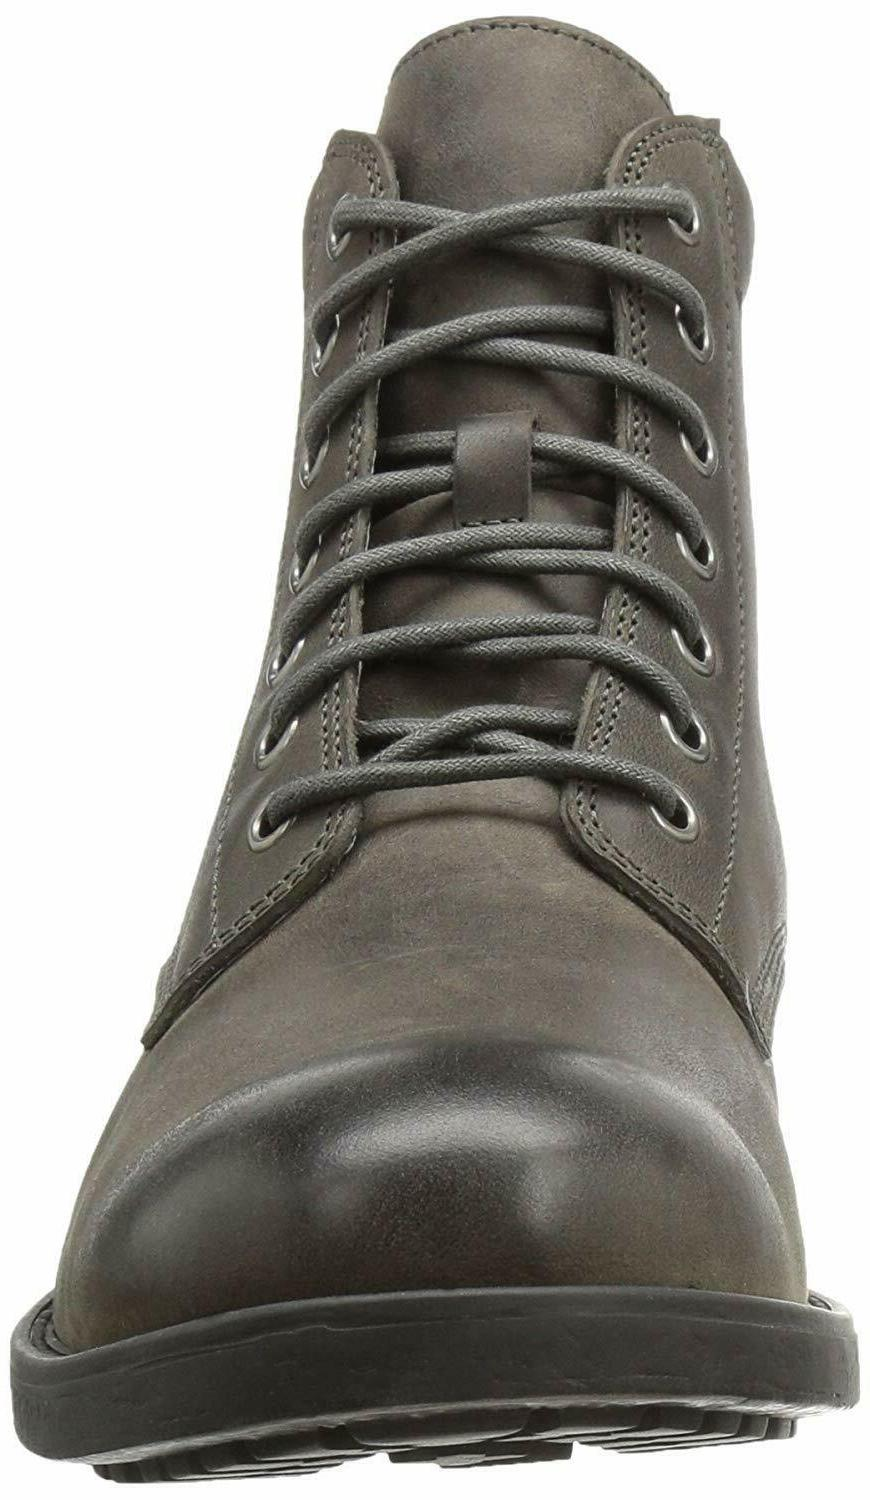 206 Collective Lace-up Boot, Gray, D